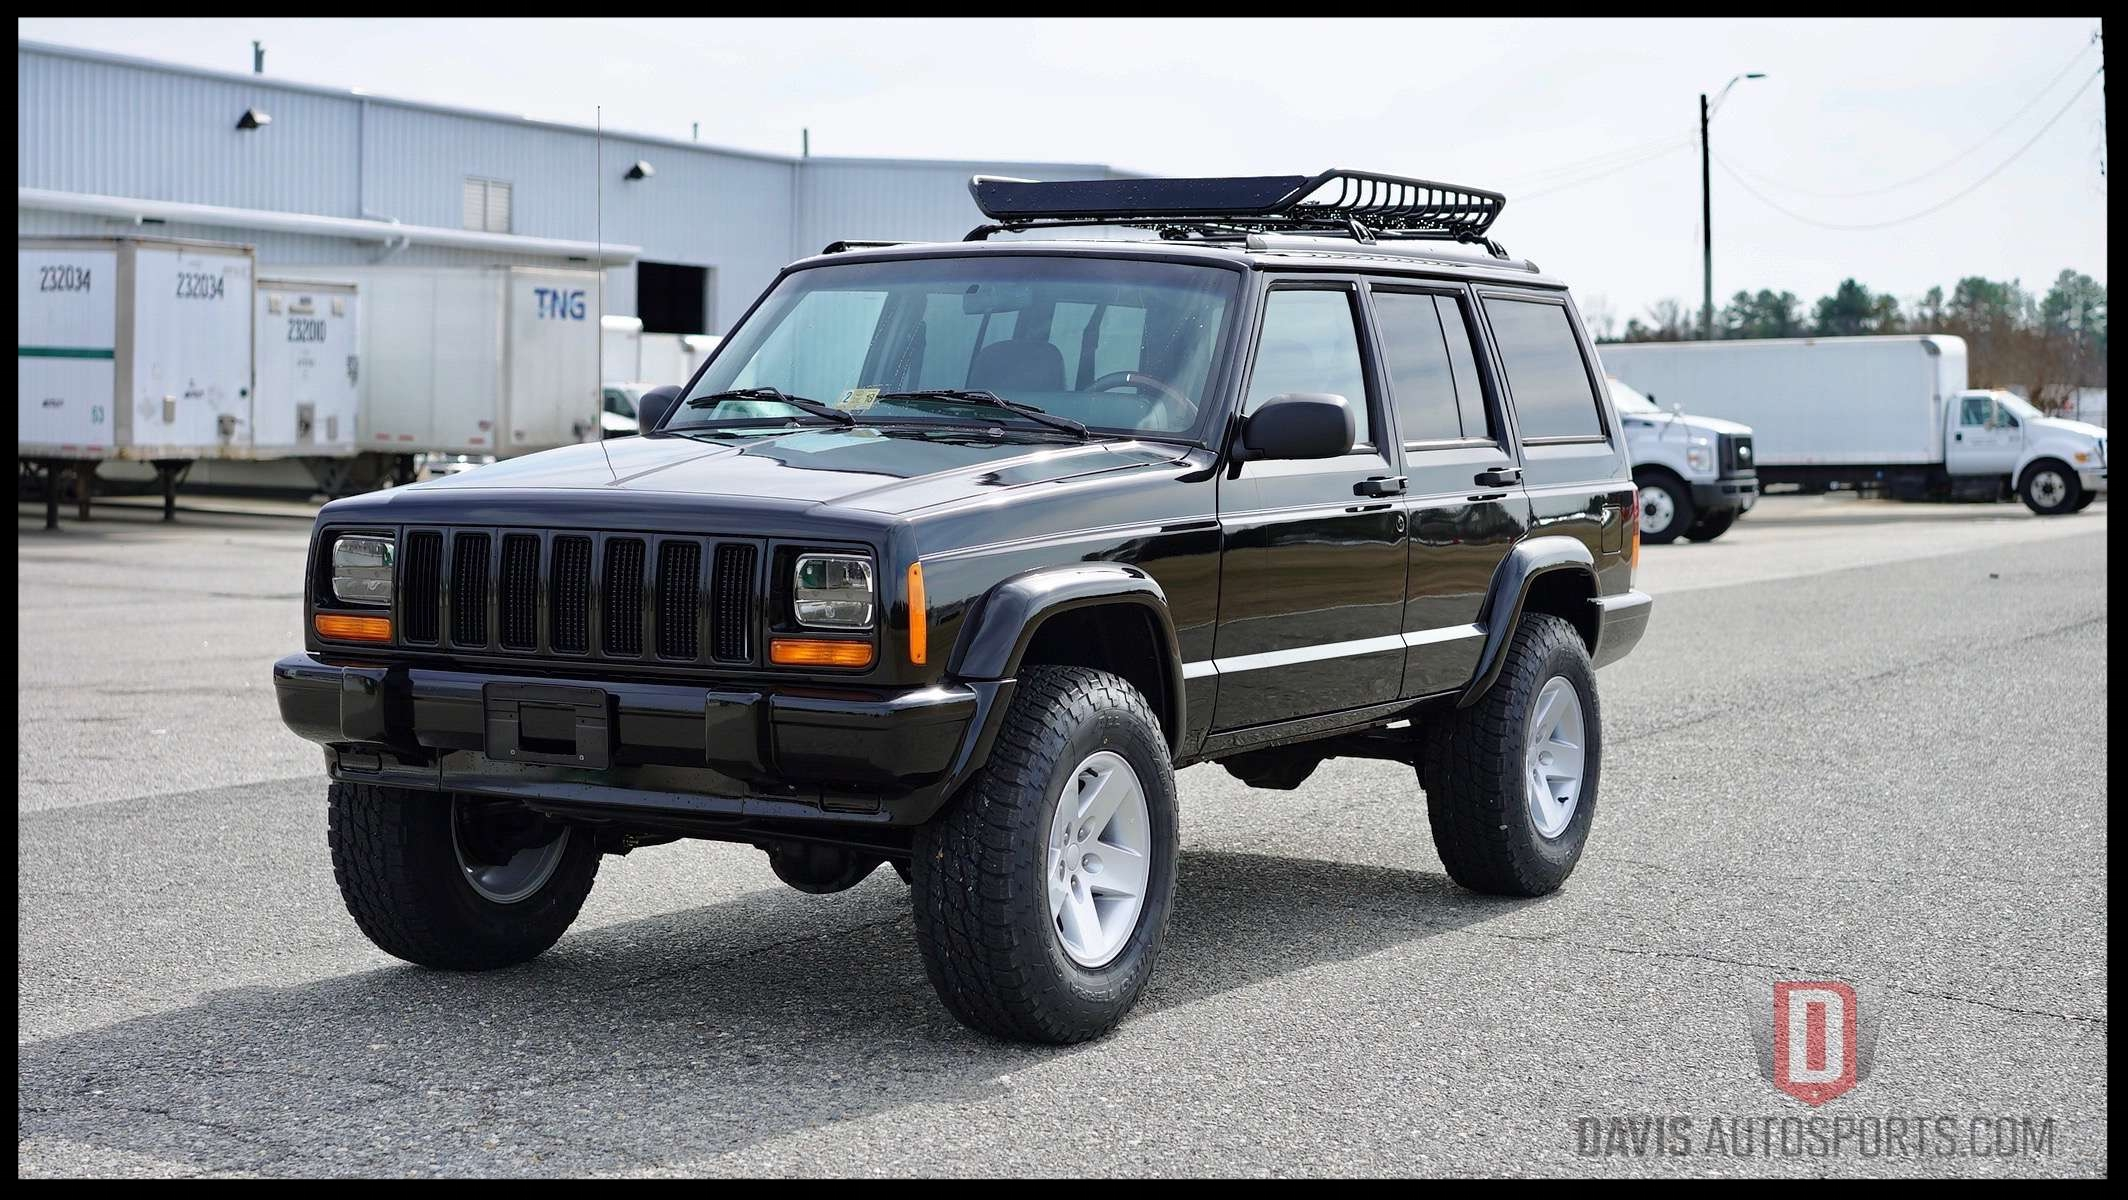 Another DAS Custom Stage 2 XJ that never hit the market for sale. Custom Built Per Customers Request.